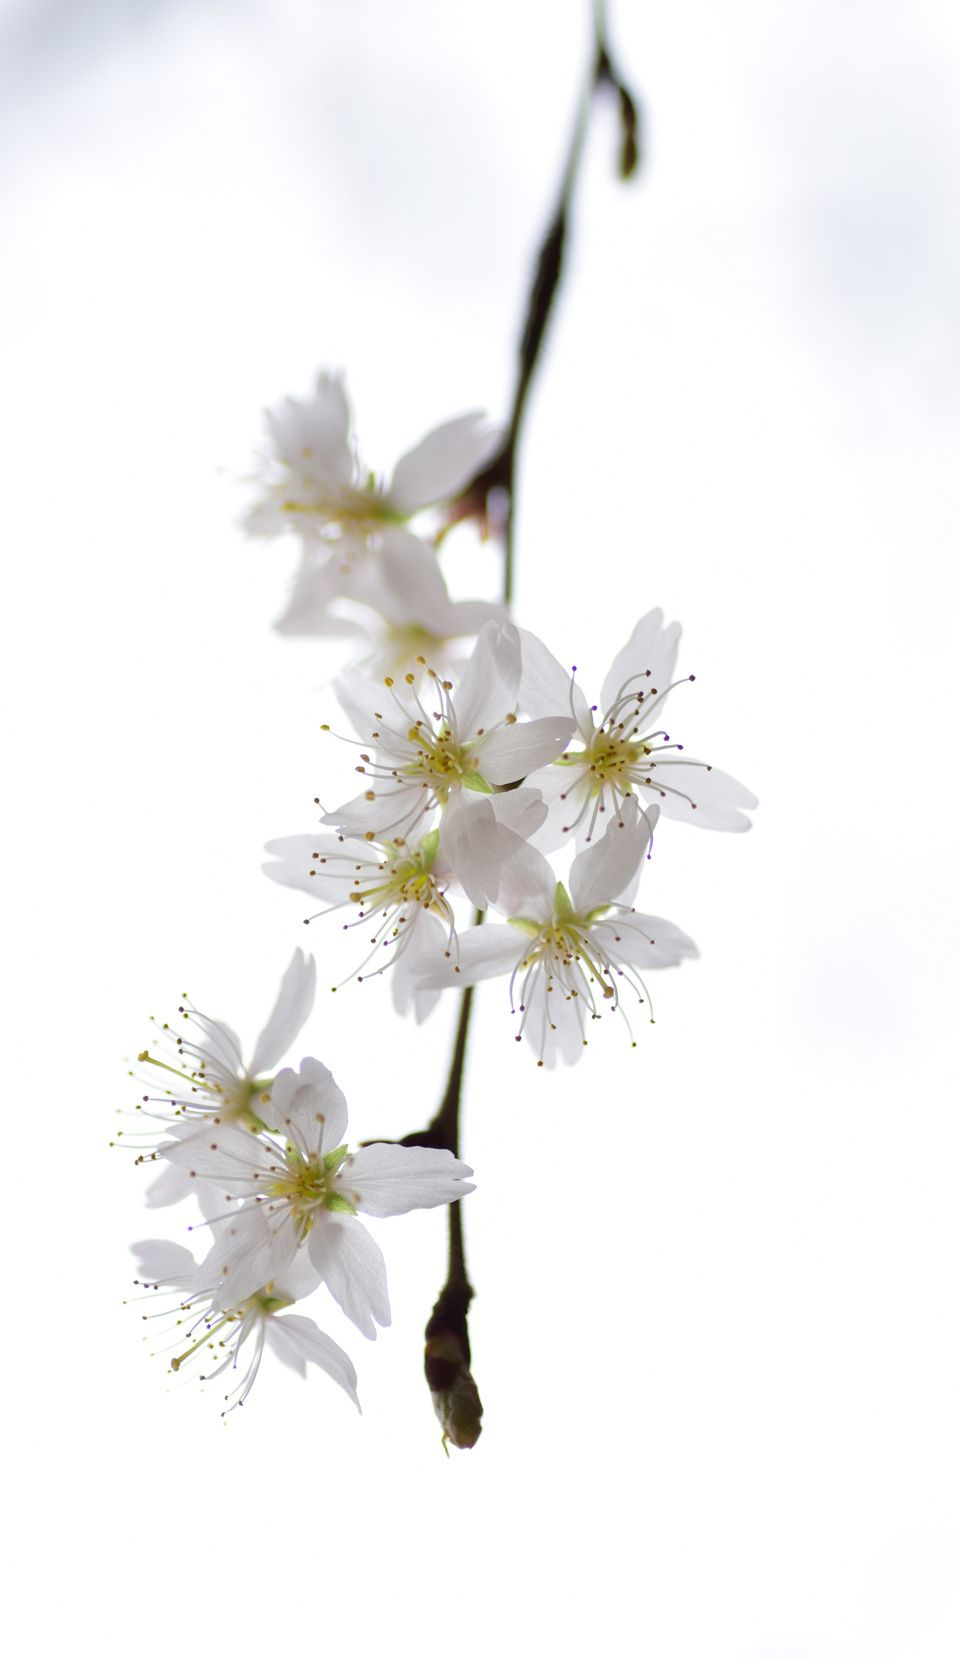 White Flower Whats The Name Flowers Pinterest What S